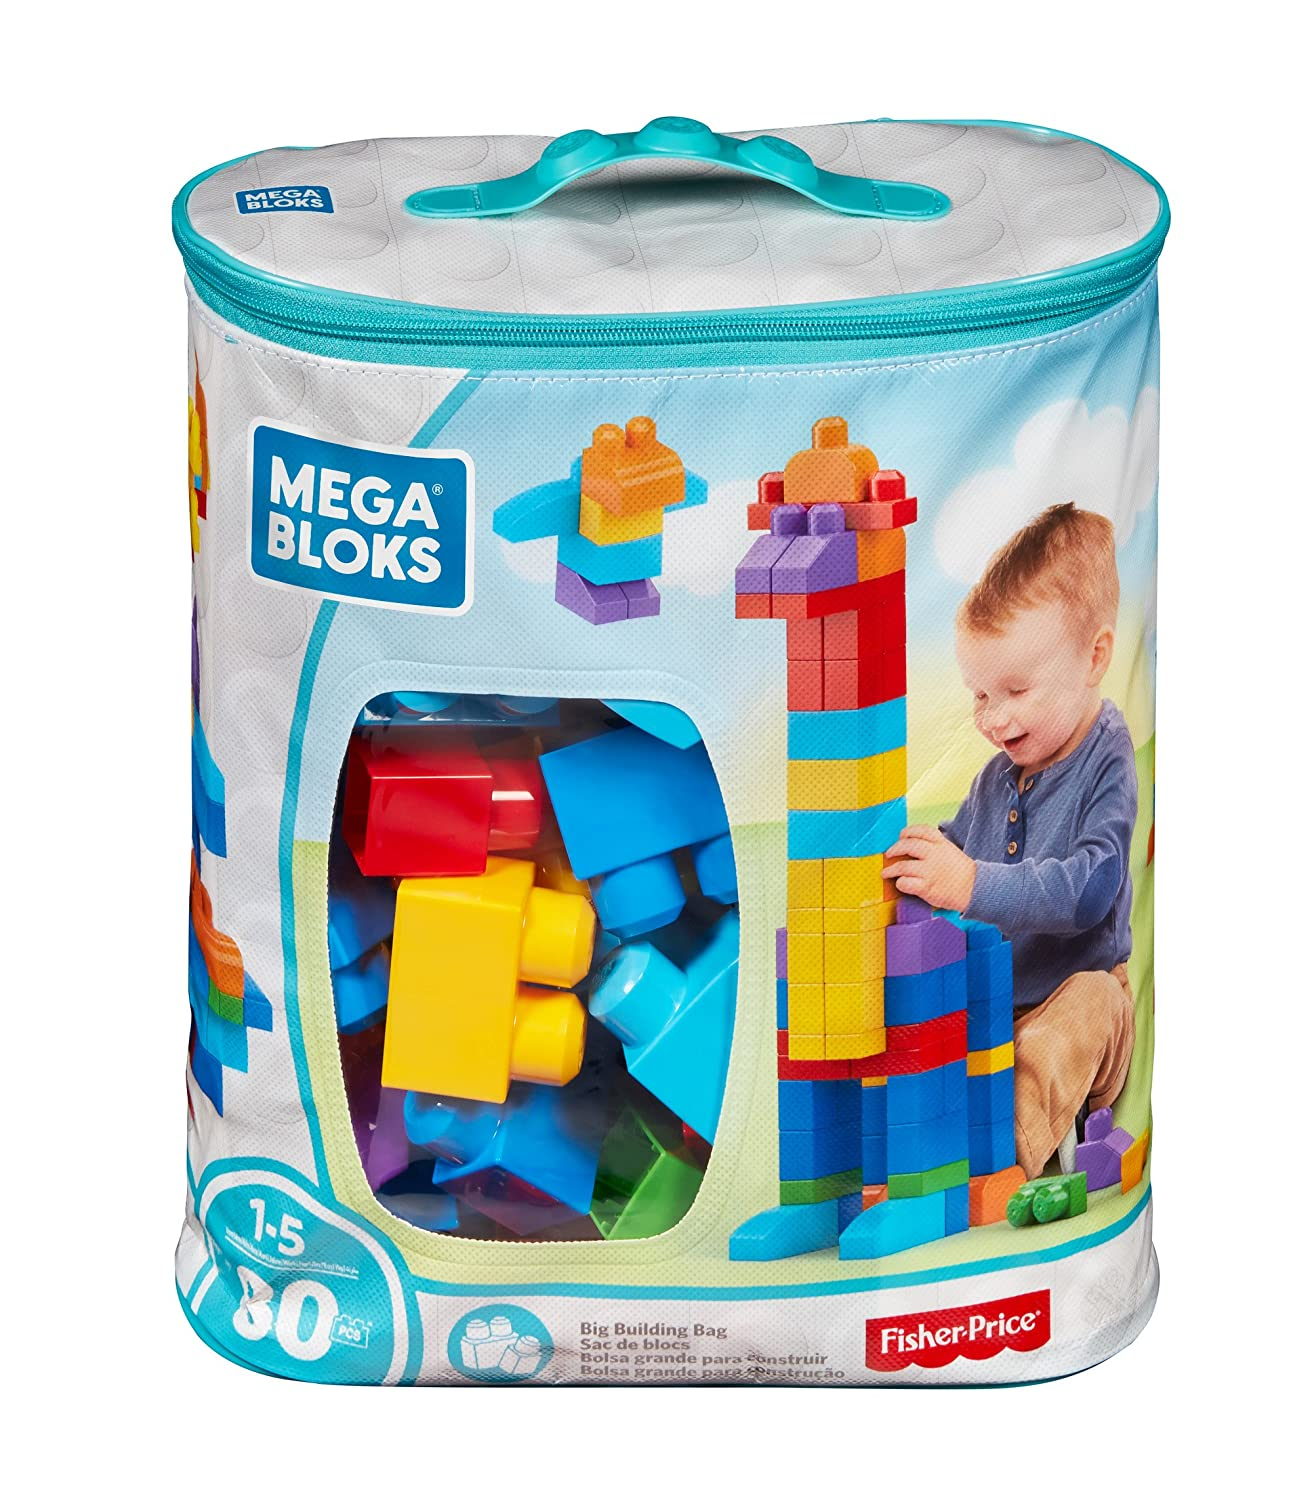 Amazon Mega Bloks 80 Piece Big Building Bag Classic Toys